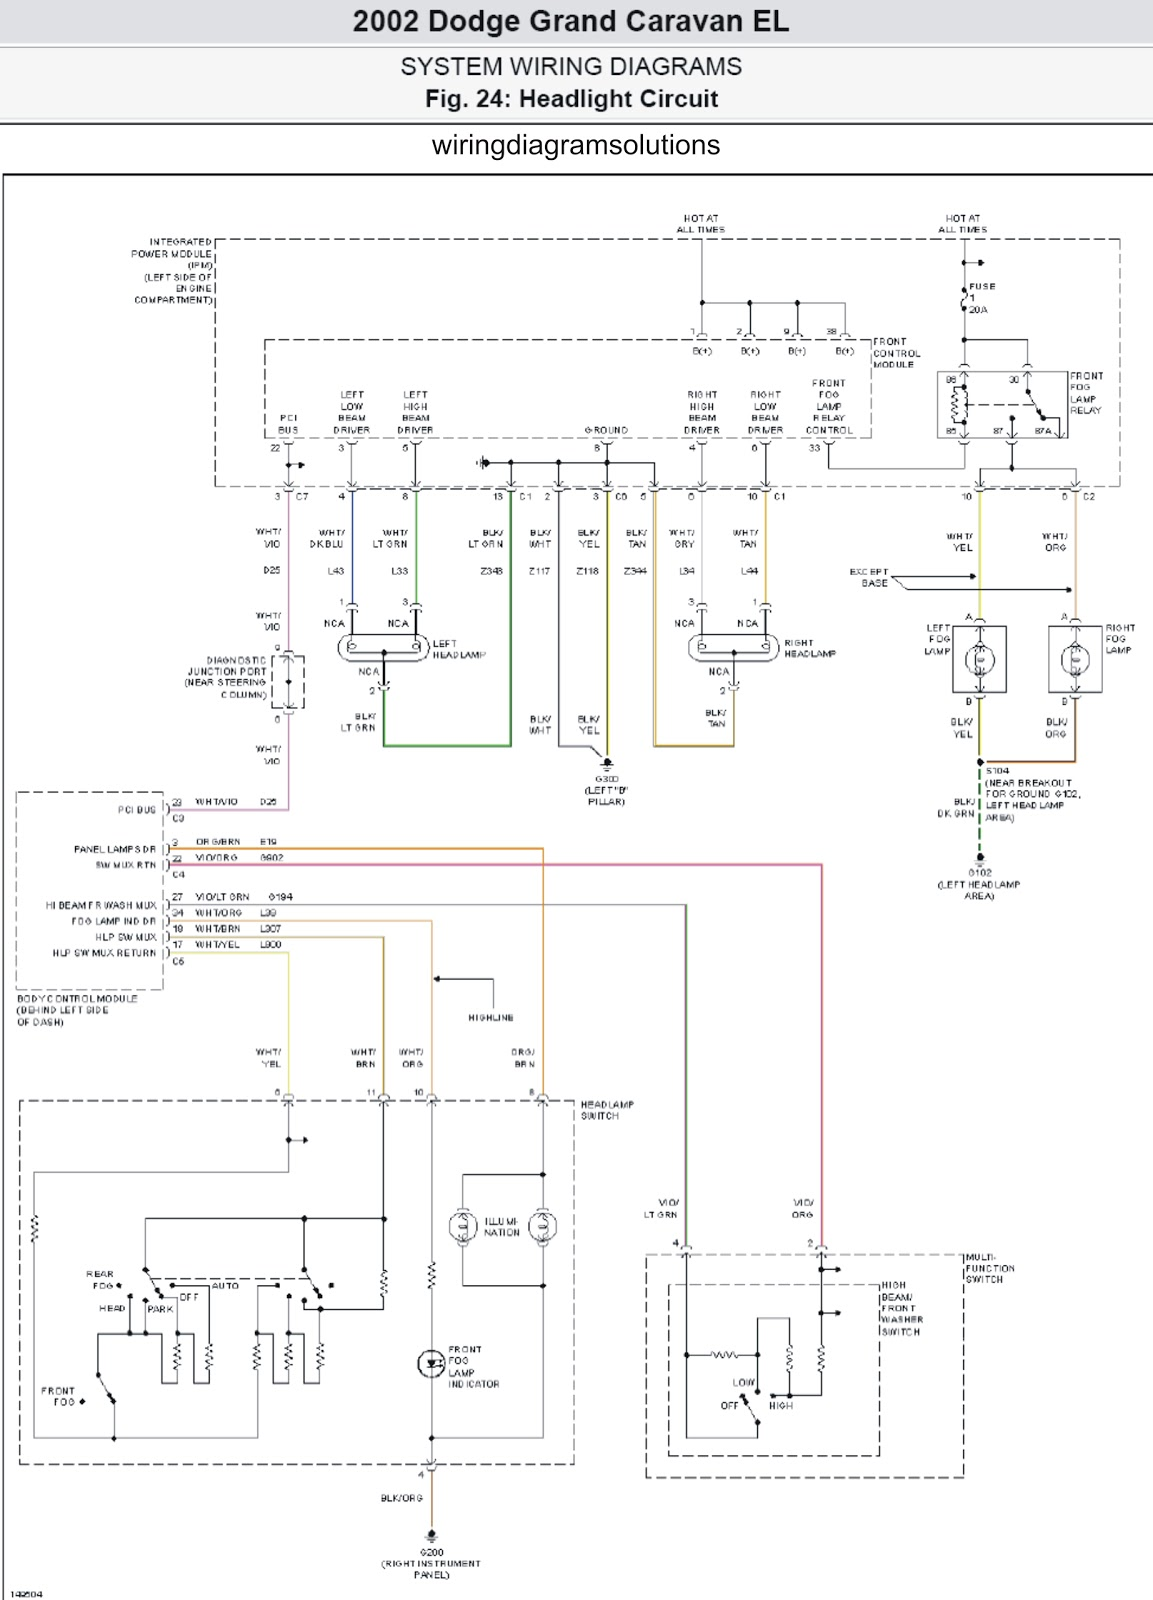 Wiring Diagram For 2005 Dodge Neon | Wiring Diagram on wiring diagram for 1997 dodge neon, wiring diagram for 2001 dodge neon, wiring diagram for 2011 dodge journey, wiring diagram for 2004 dodge ram, wiring diagram for 1995 dodge neon, wiring diagram for 2008 dodge charger, wiring diagram for 2007 dodge nitro, wiring diagram for 1999 dodge intrepid, wiring diagram for 2000 volkswagen jetta, wiring diagram for 2007 pontiac g6, wiring diagram for 2006 pontiac g6, wiring diagram for 2006 jeep grand cherokee, wiring diagram for 2000 dodge neon, wiring diagram for 2002 dodge ram 2500, wiring diagram for 2003 jeep liberty, wiring diagram for 1997 dodge ram 1500, wiring diagram for 2000 hyundai sonata, wiring diagram for 2010 dodge charger, wiring diagram for 2009 dodge journey, wiring diagram for 2003 dodge neon,